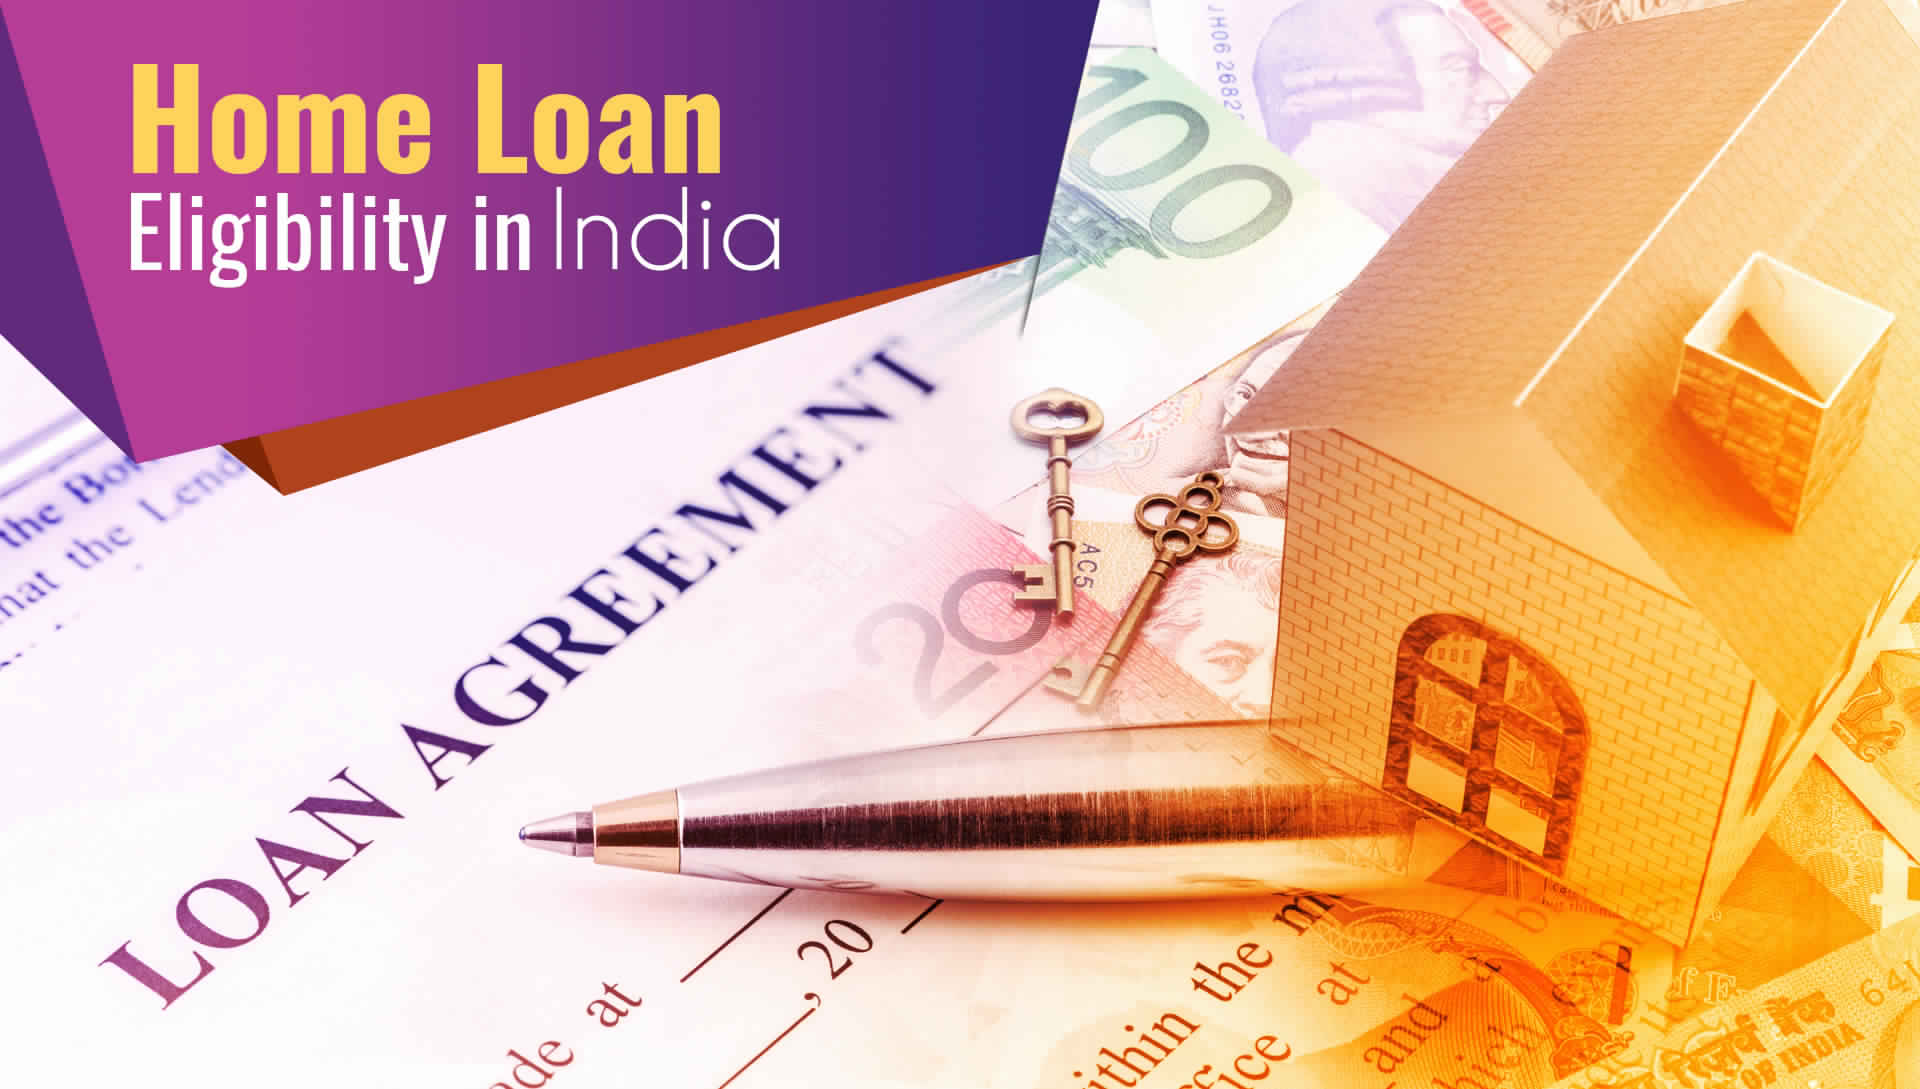 All You Need to Know About Home Loan Eligibility in India